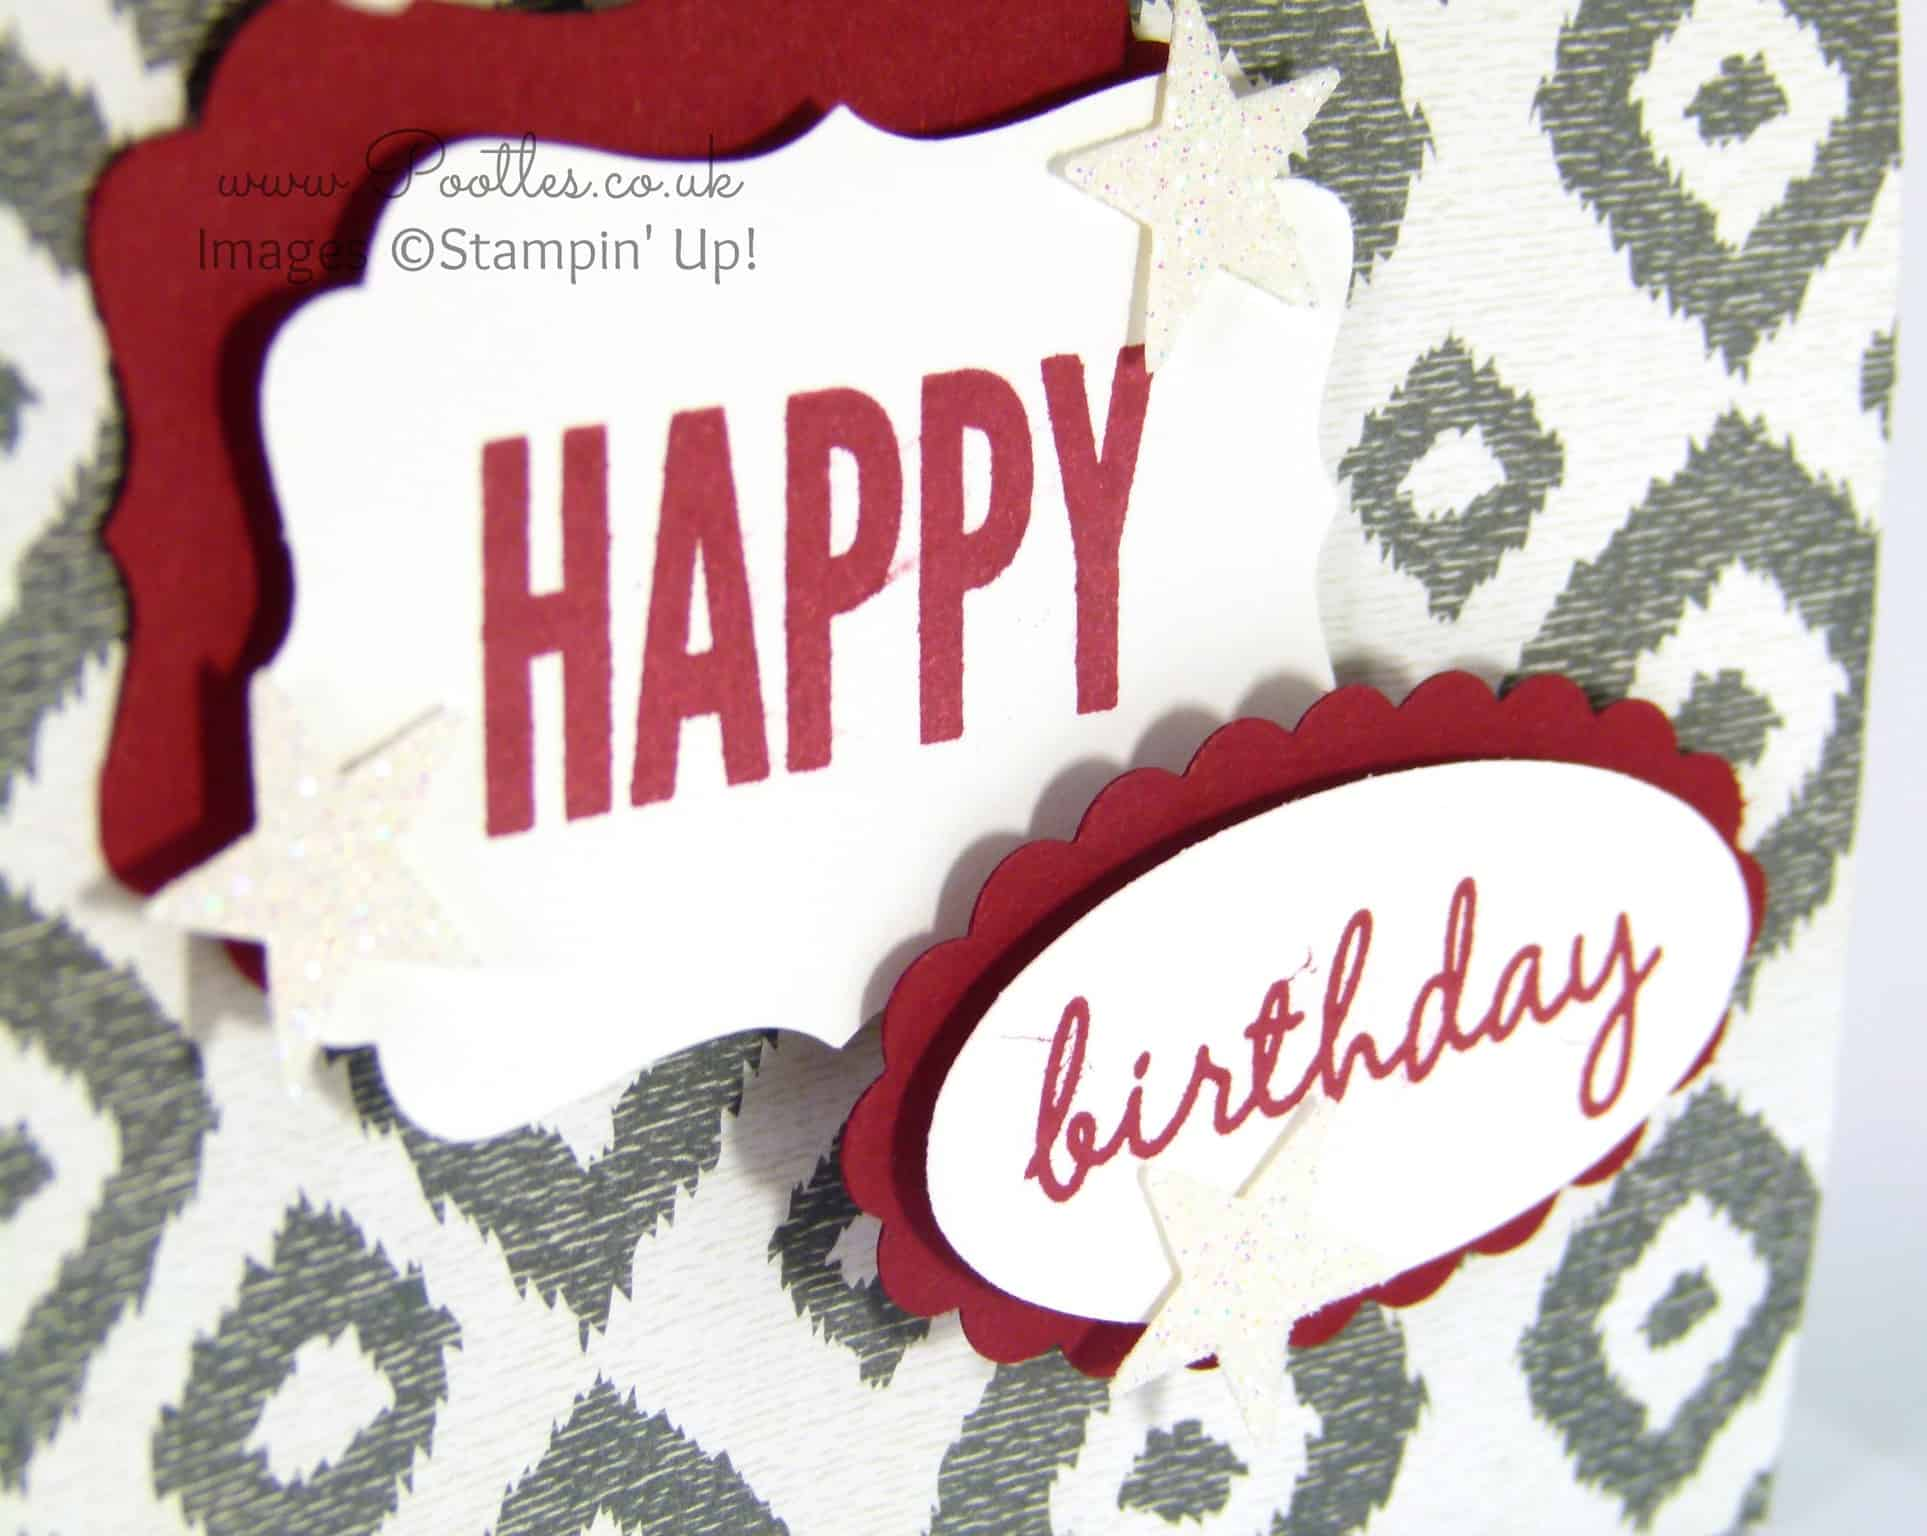 Stampin' Up! Sweet Dreams DSP Gift Bag Tutorial